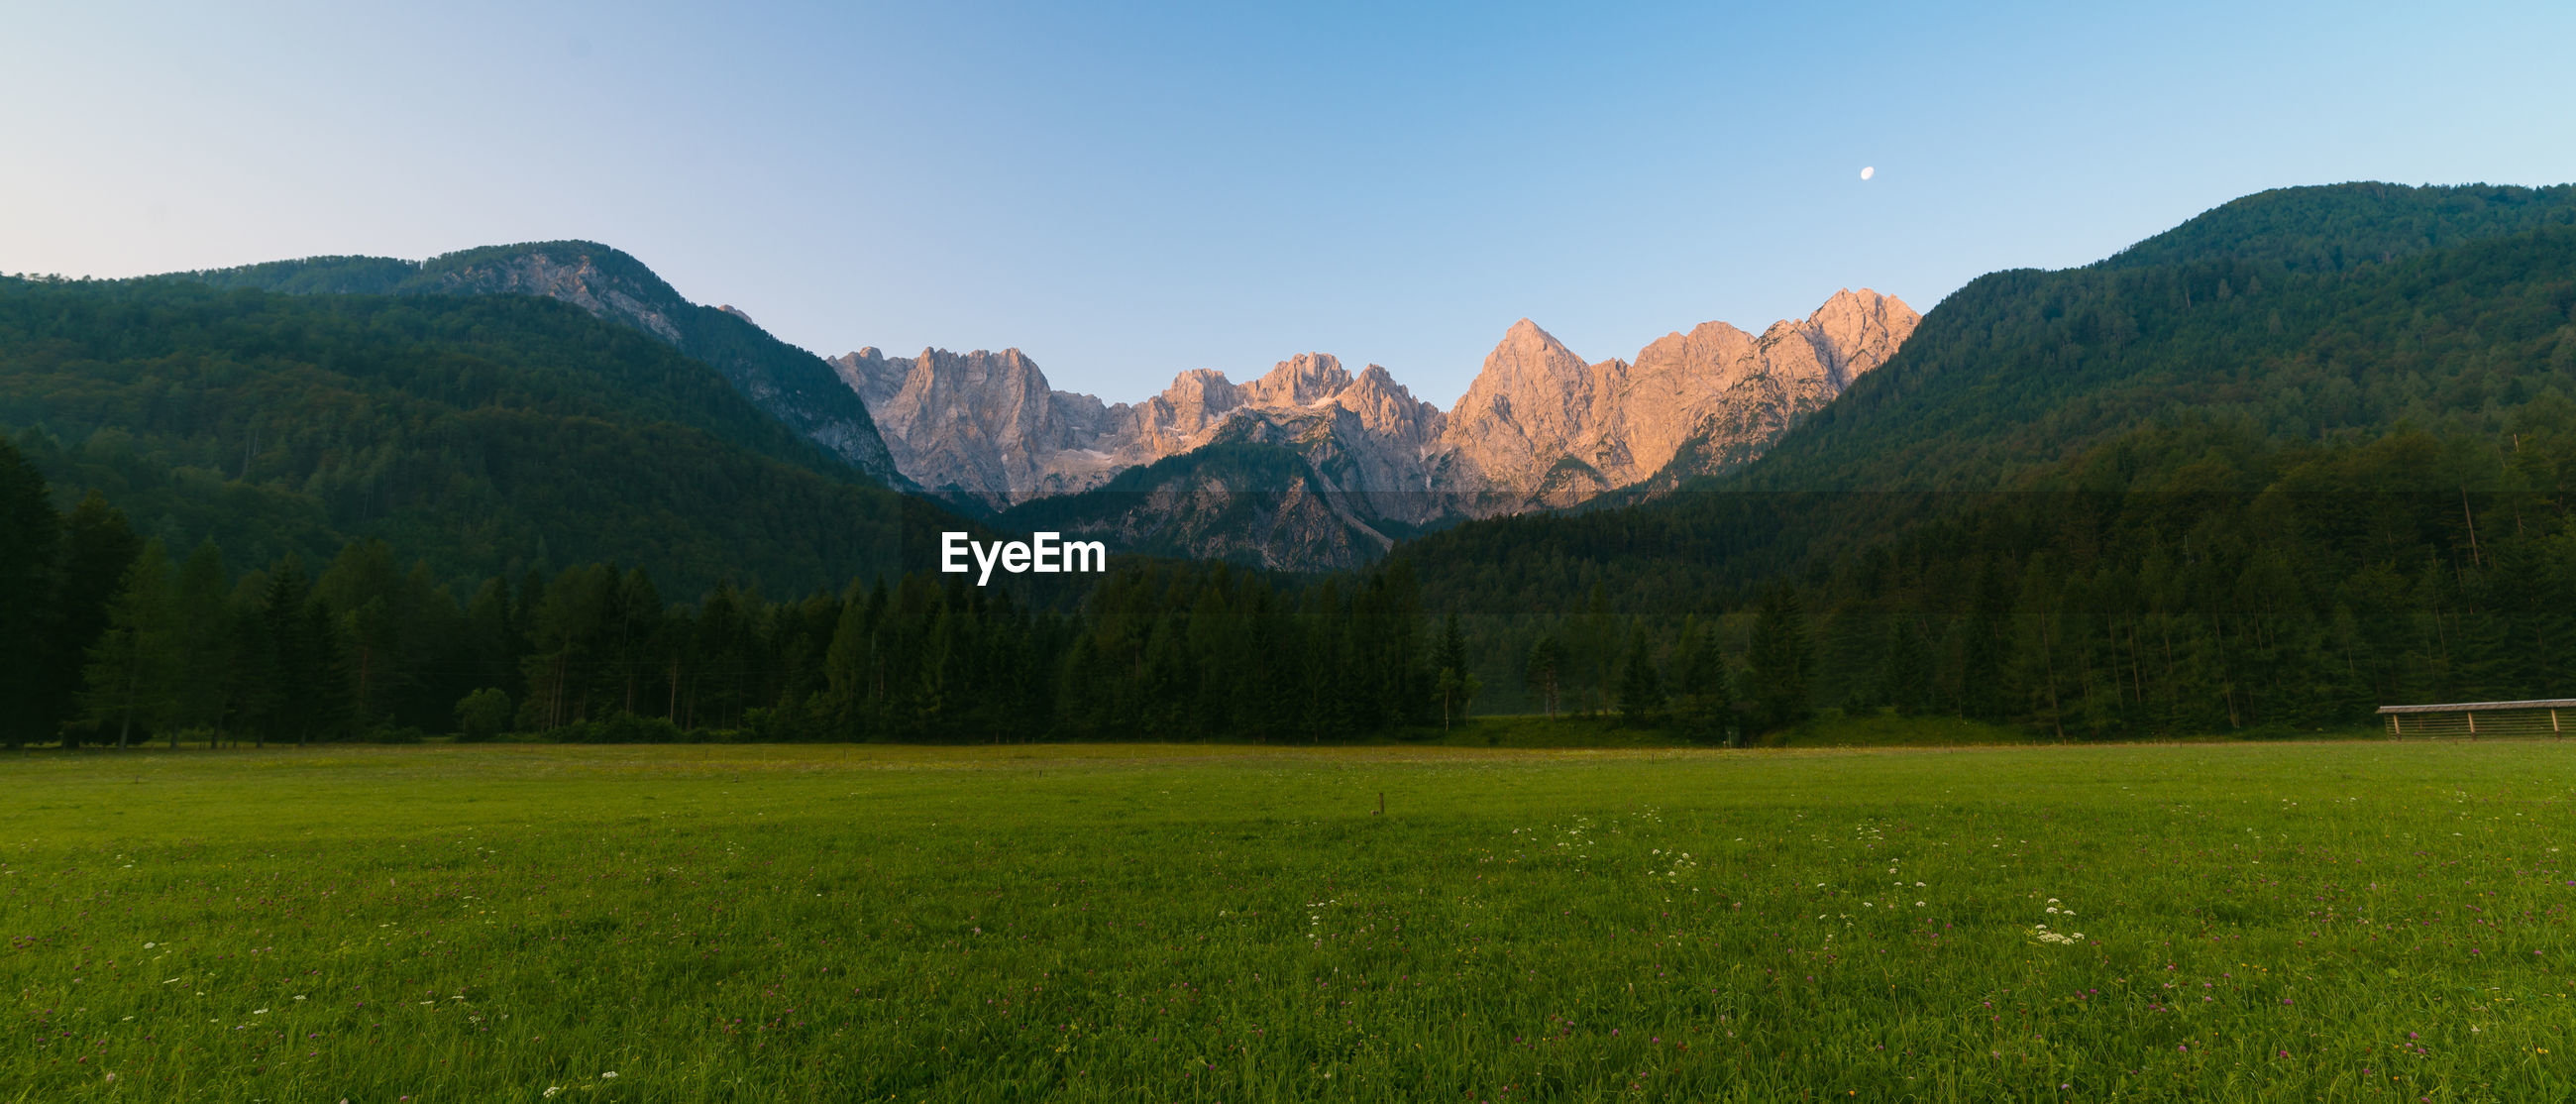 Scenic view of mountains by grassy field against sky